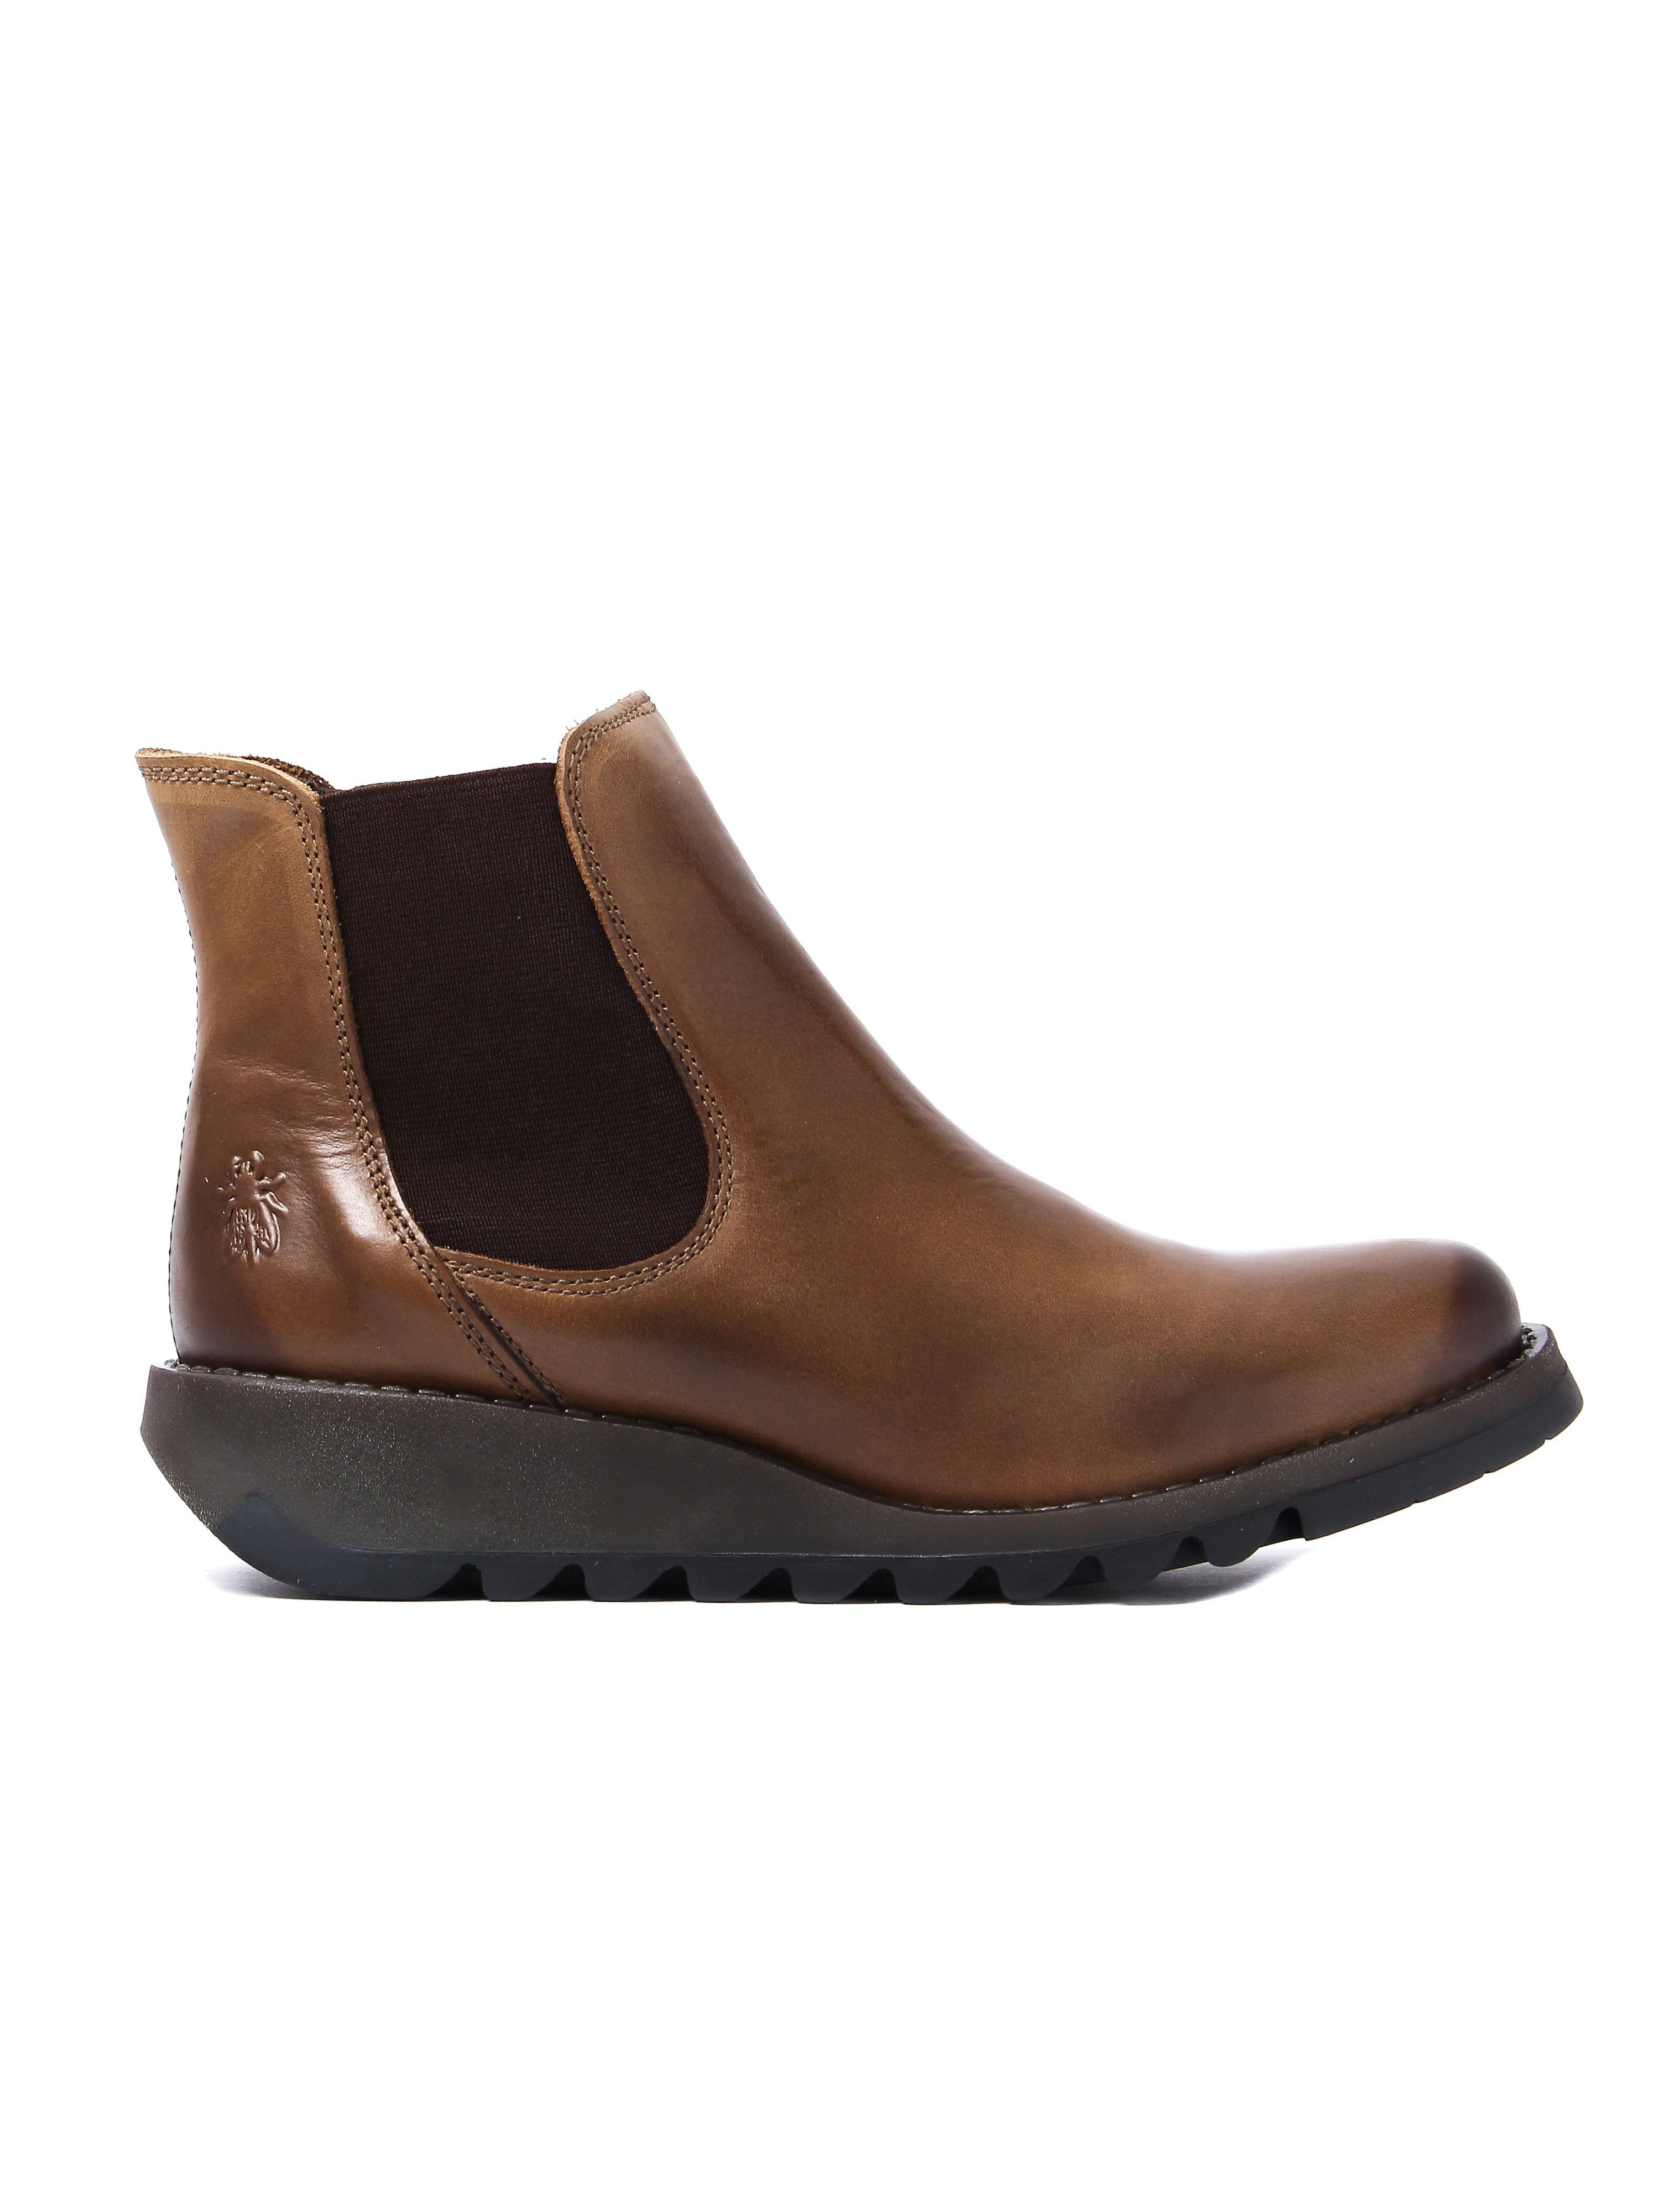 Fly London omen's Salv Chelsea Boots - Camel Leather